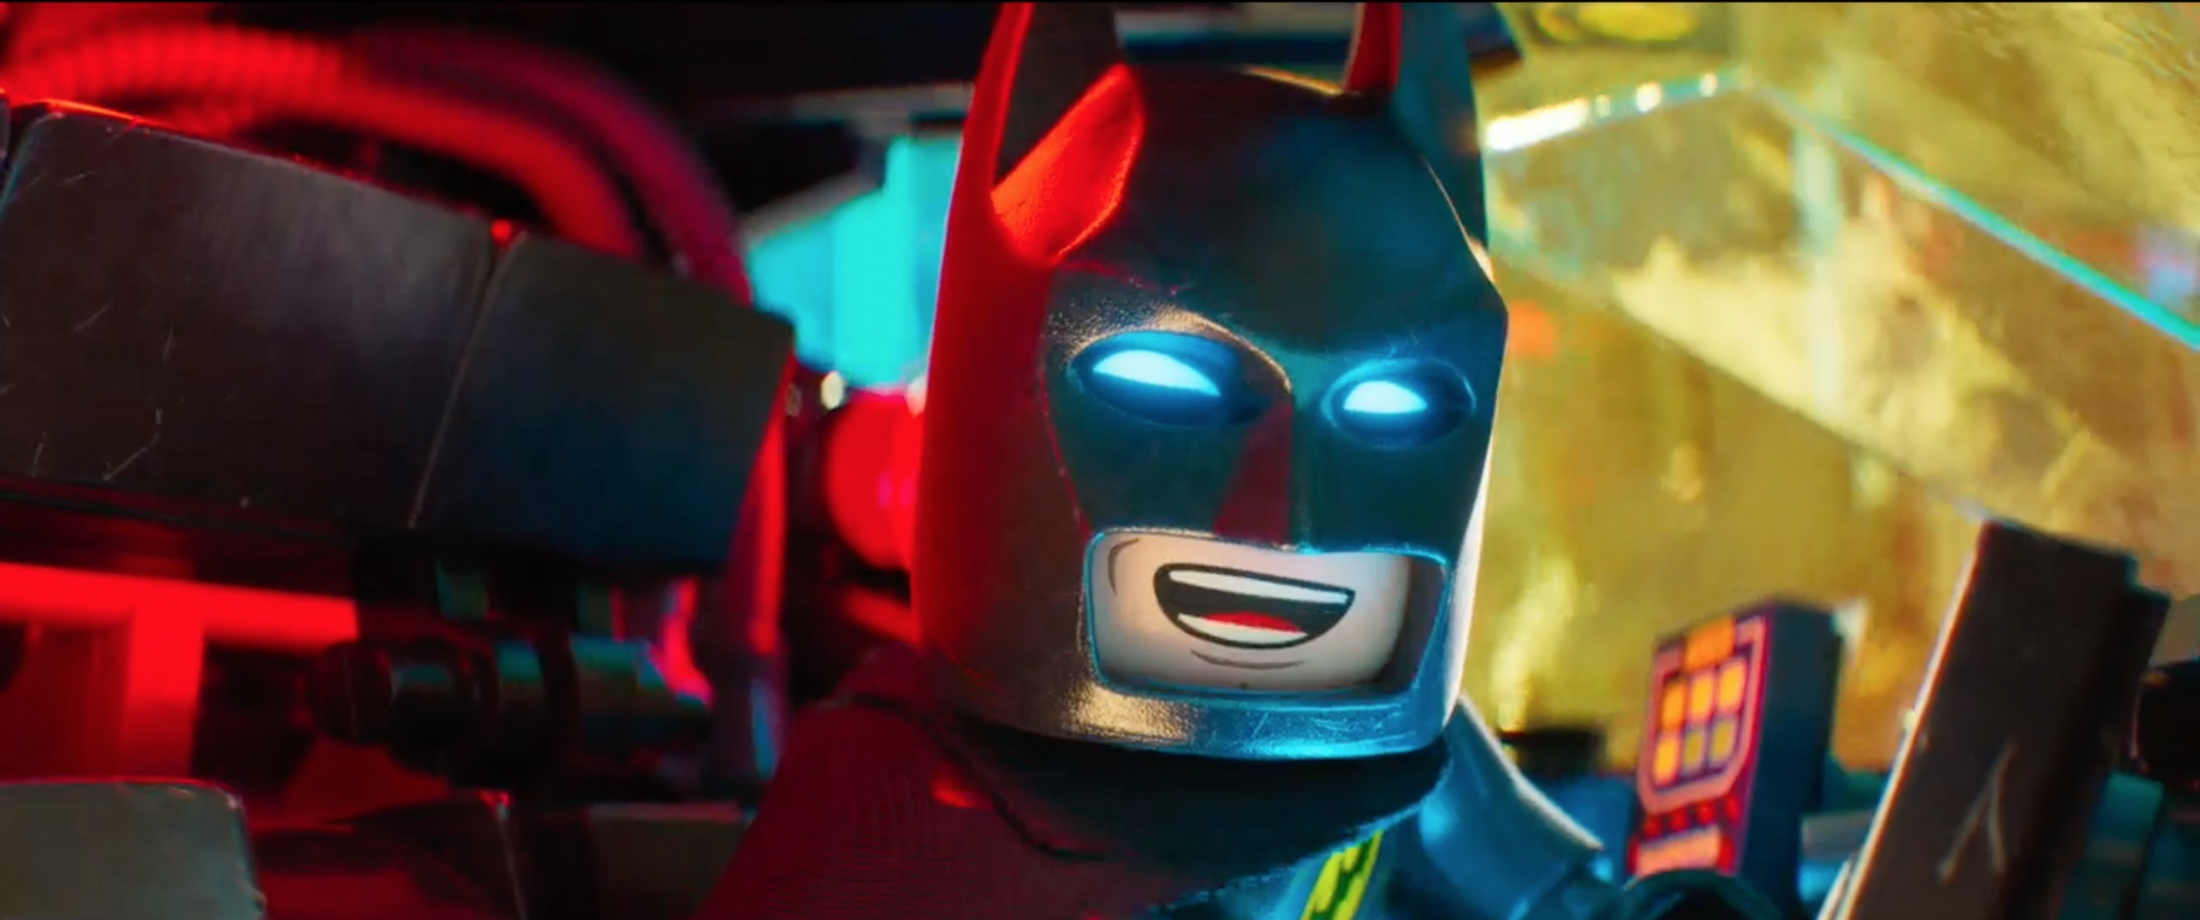 Image Media for LEGO Batman: One Brick at a Time